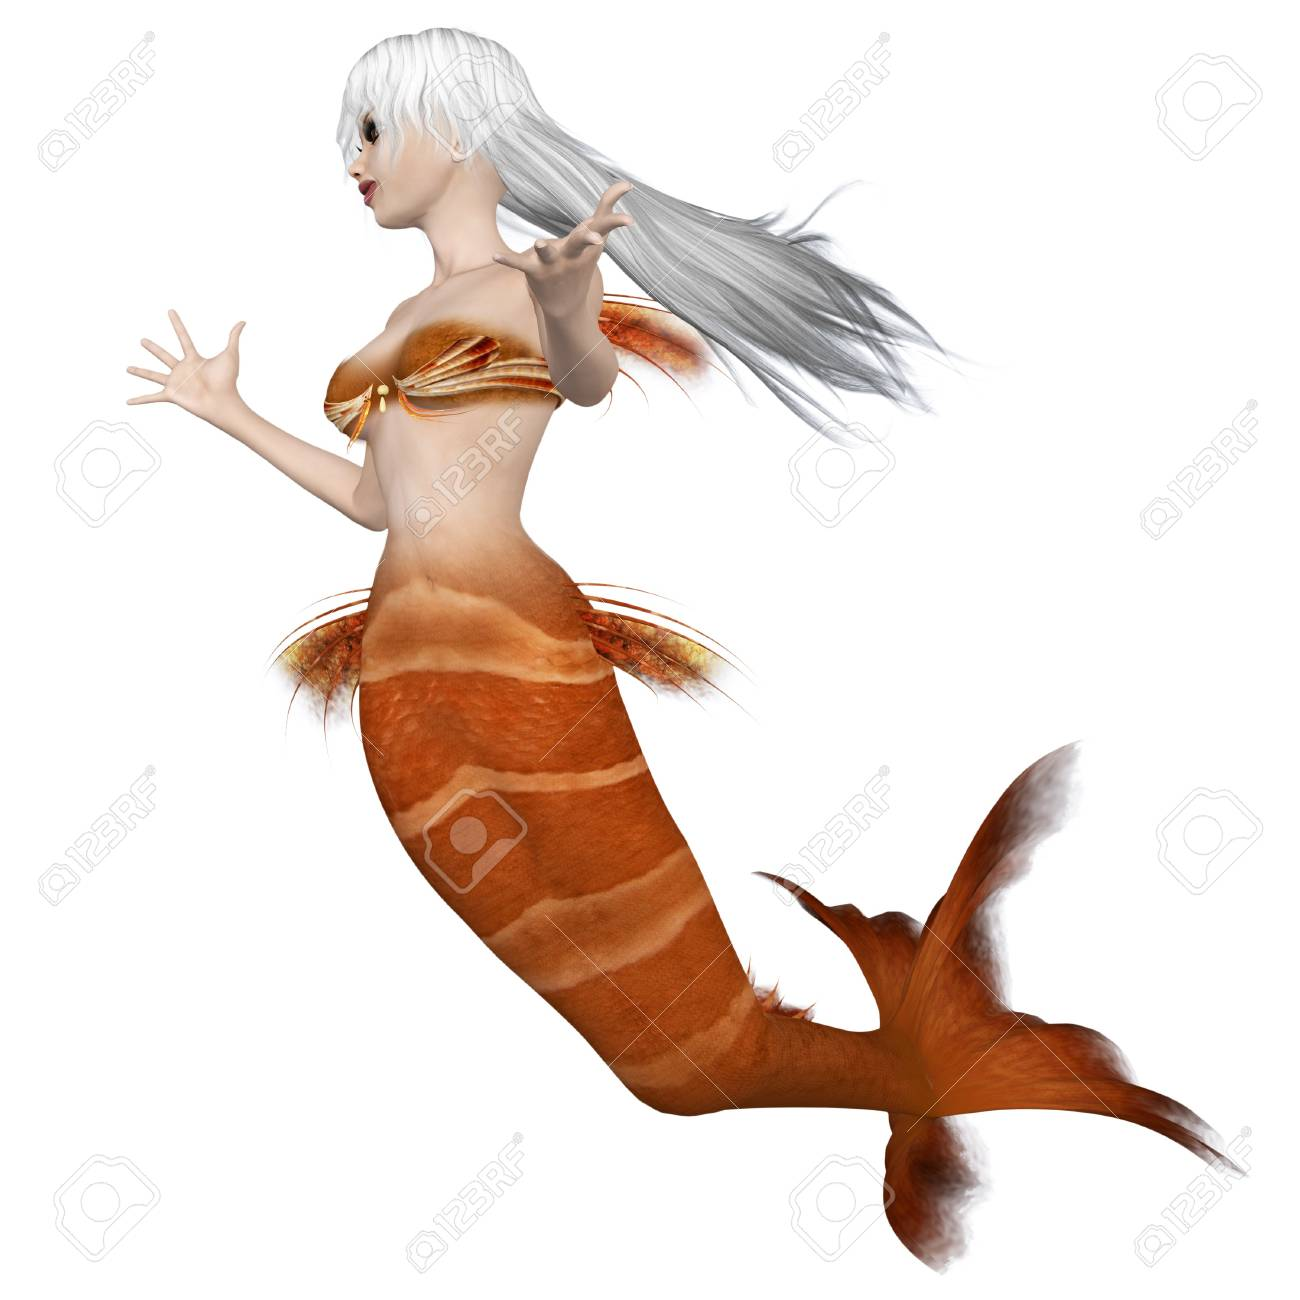 Digitally rendered image of a beautiful mermaid with orange tail and white hair. Stock Photo - 18495685